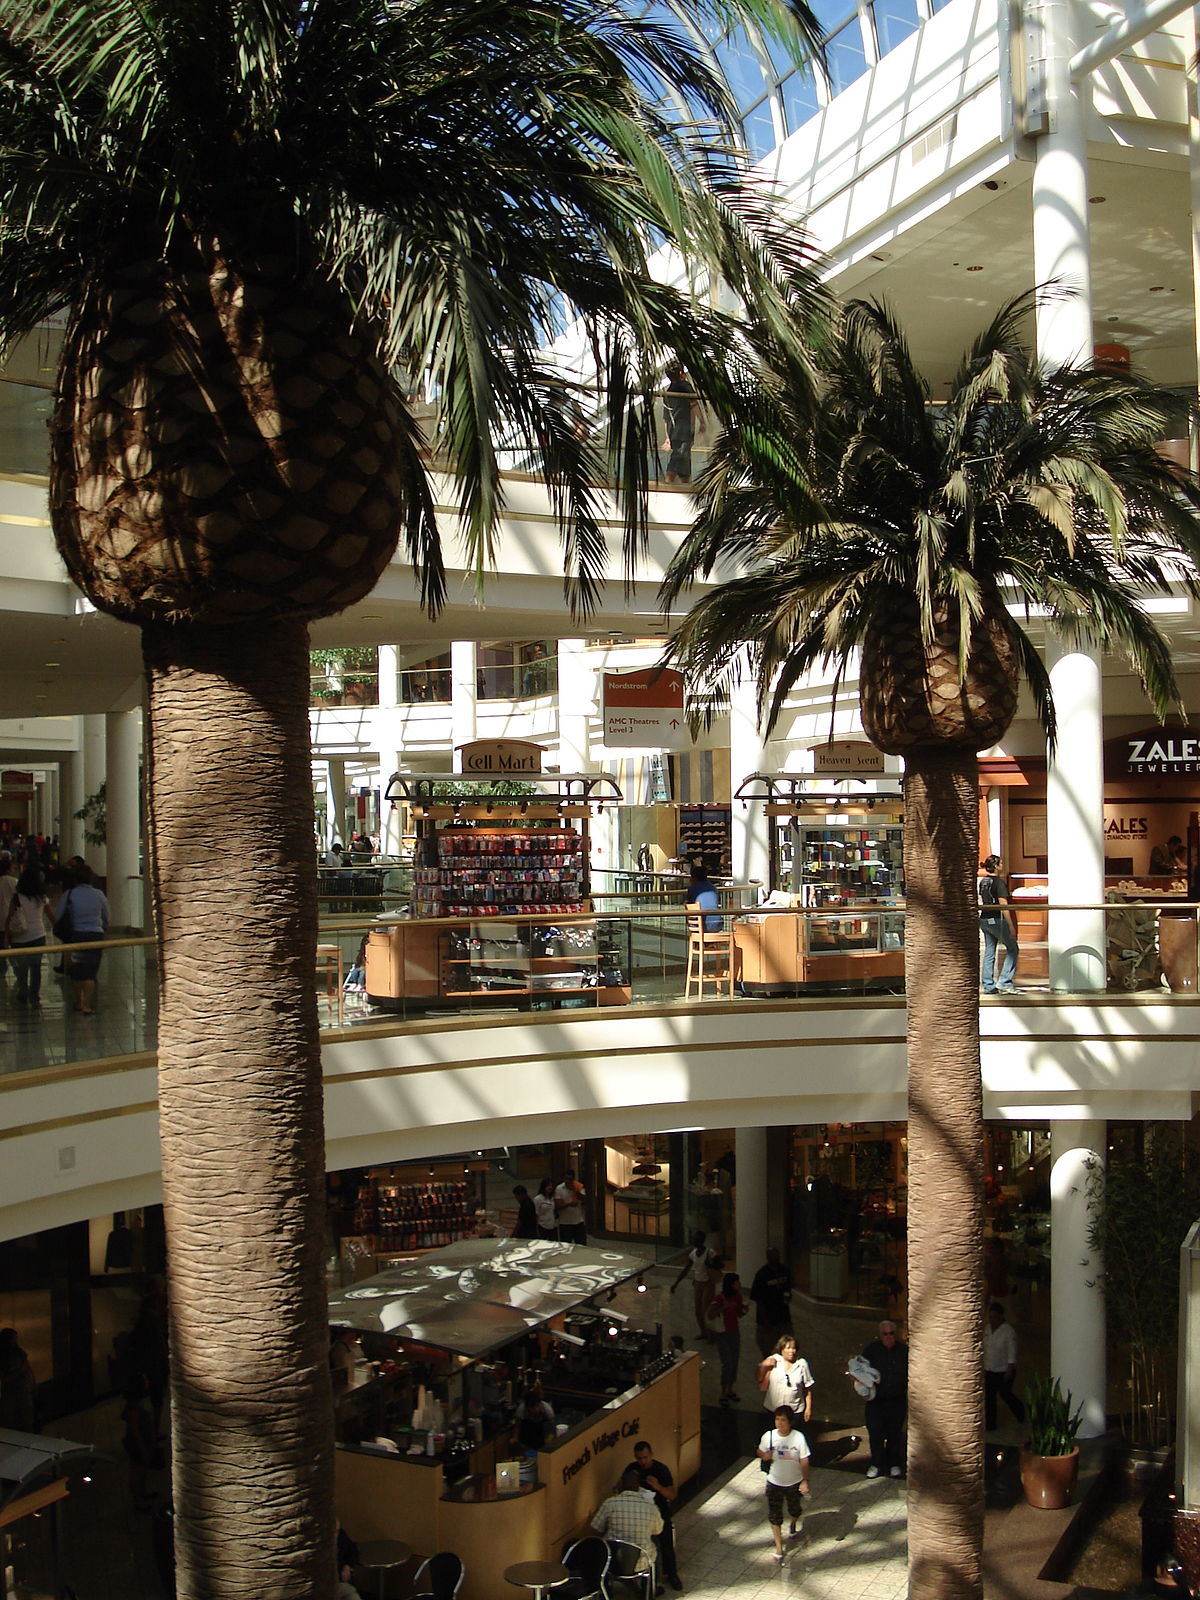 South Bay Galleria - Wikipedia